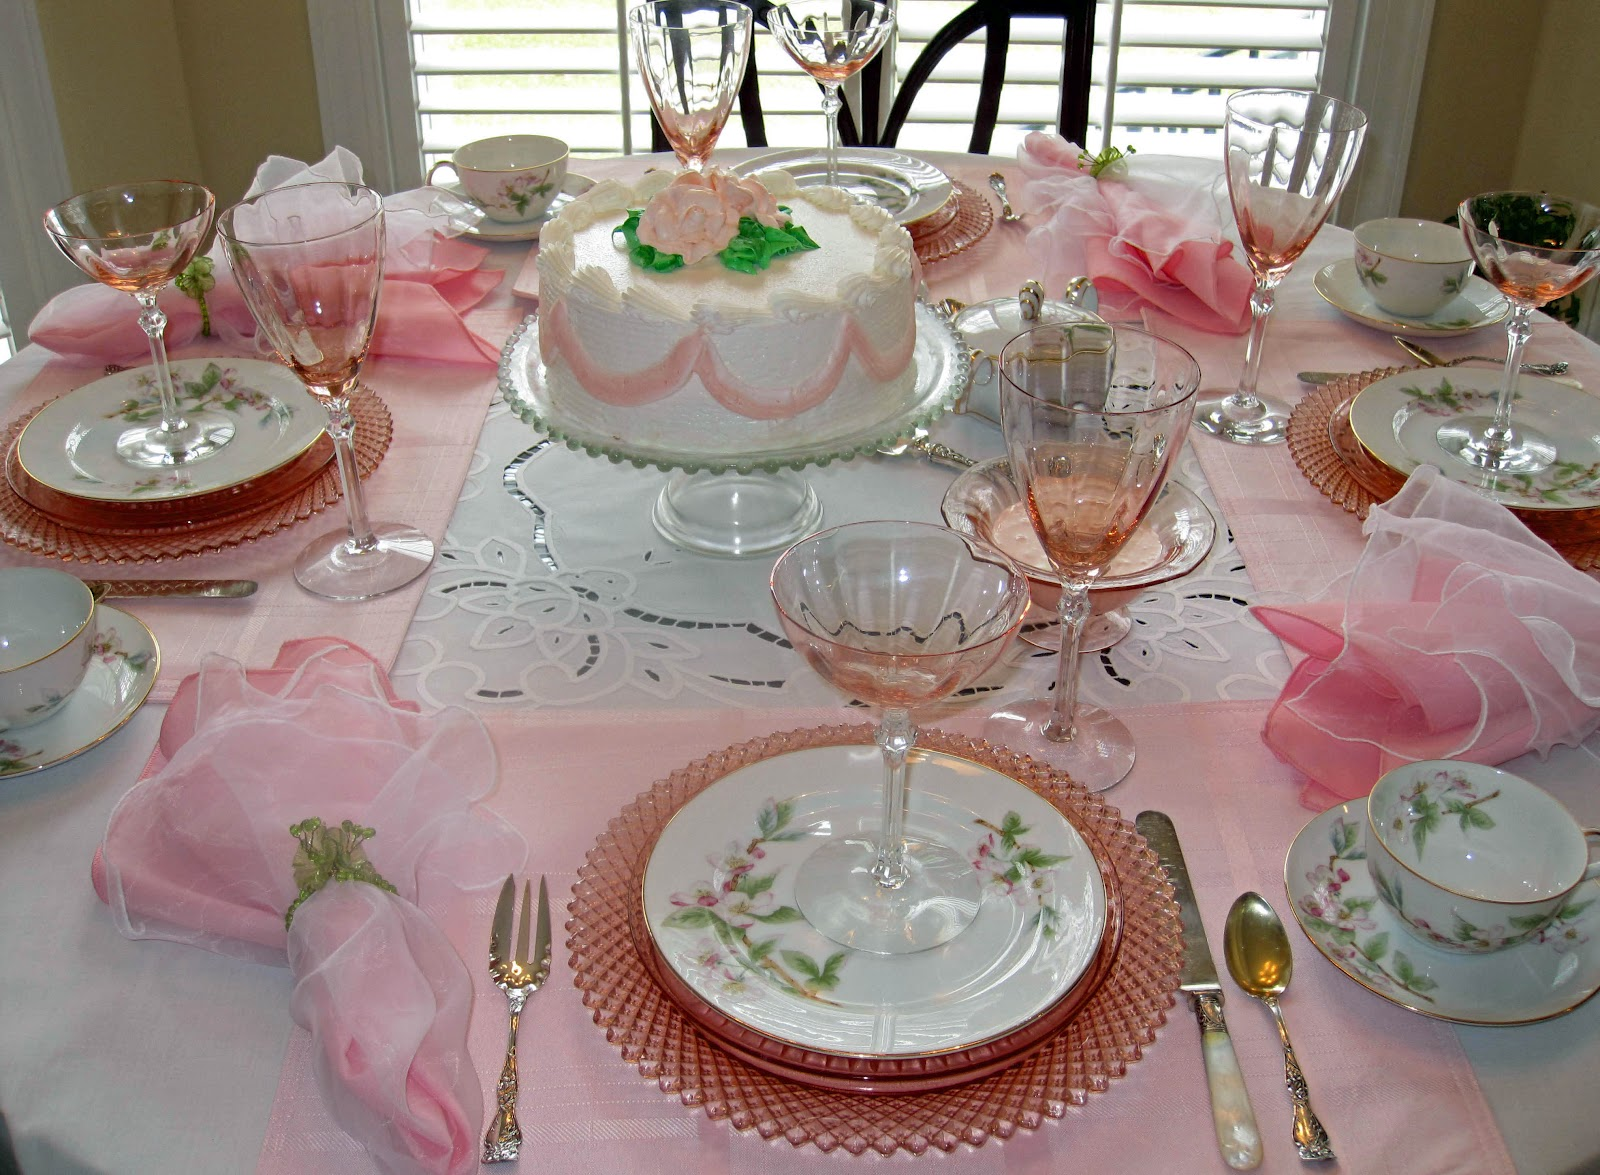 I Have Set A Table For Dessert And Coffee For Four And Pink Is The Color Of  The Day! I Began With A White Battenburg Tablecloth With Pink Placemats  Layered ...